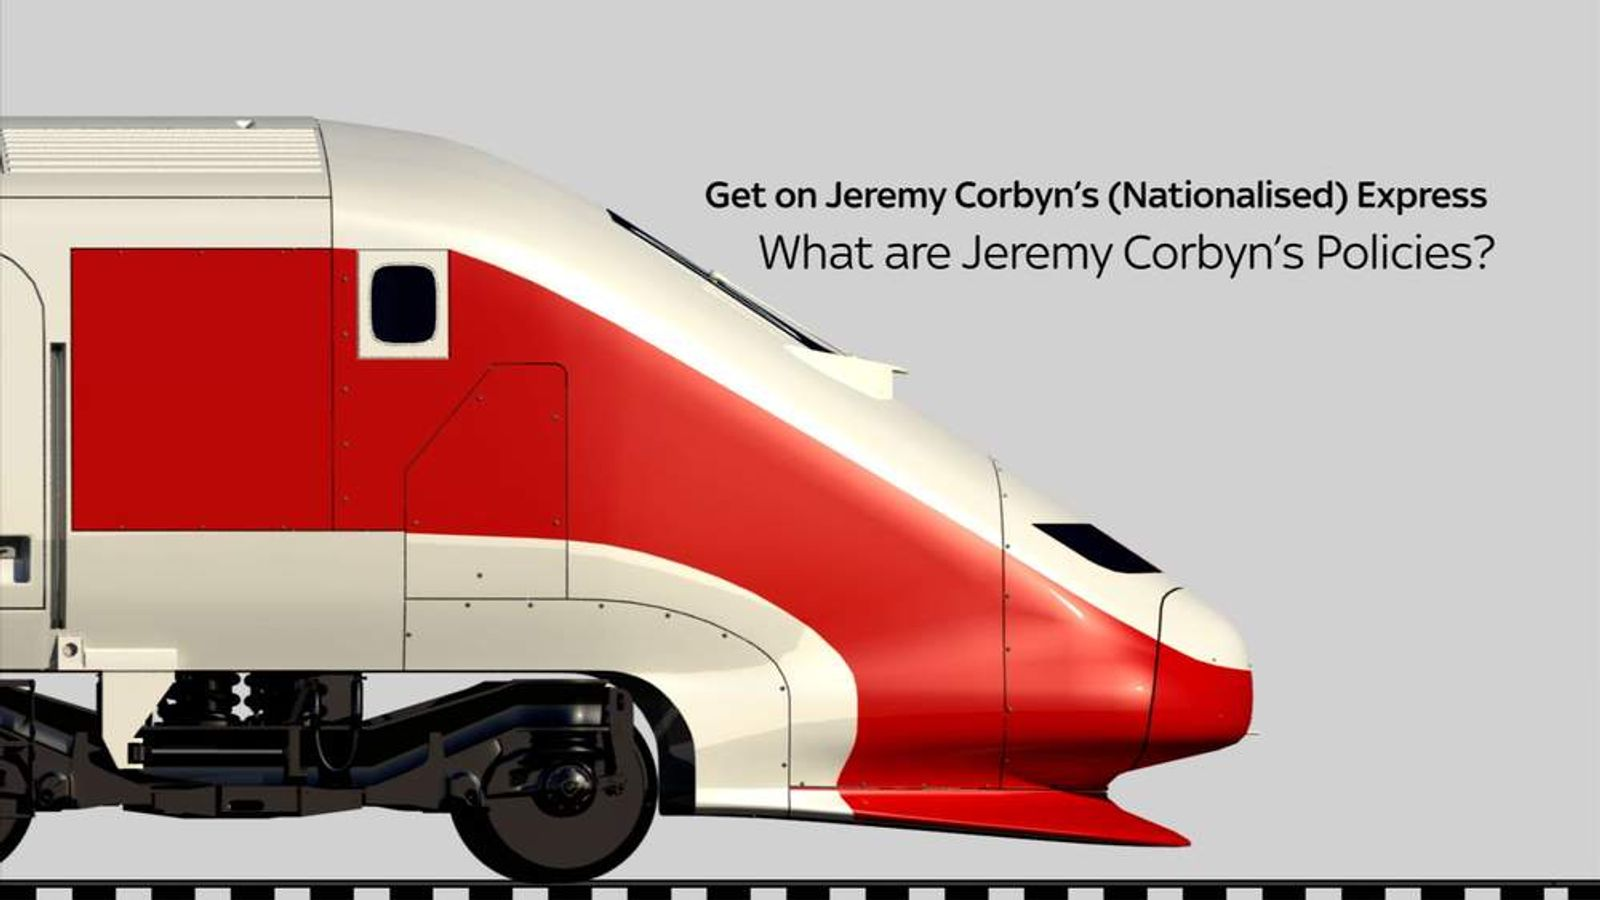 Corbyn Policy Train